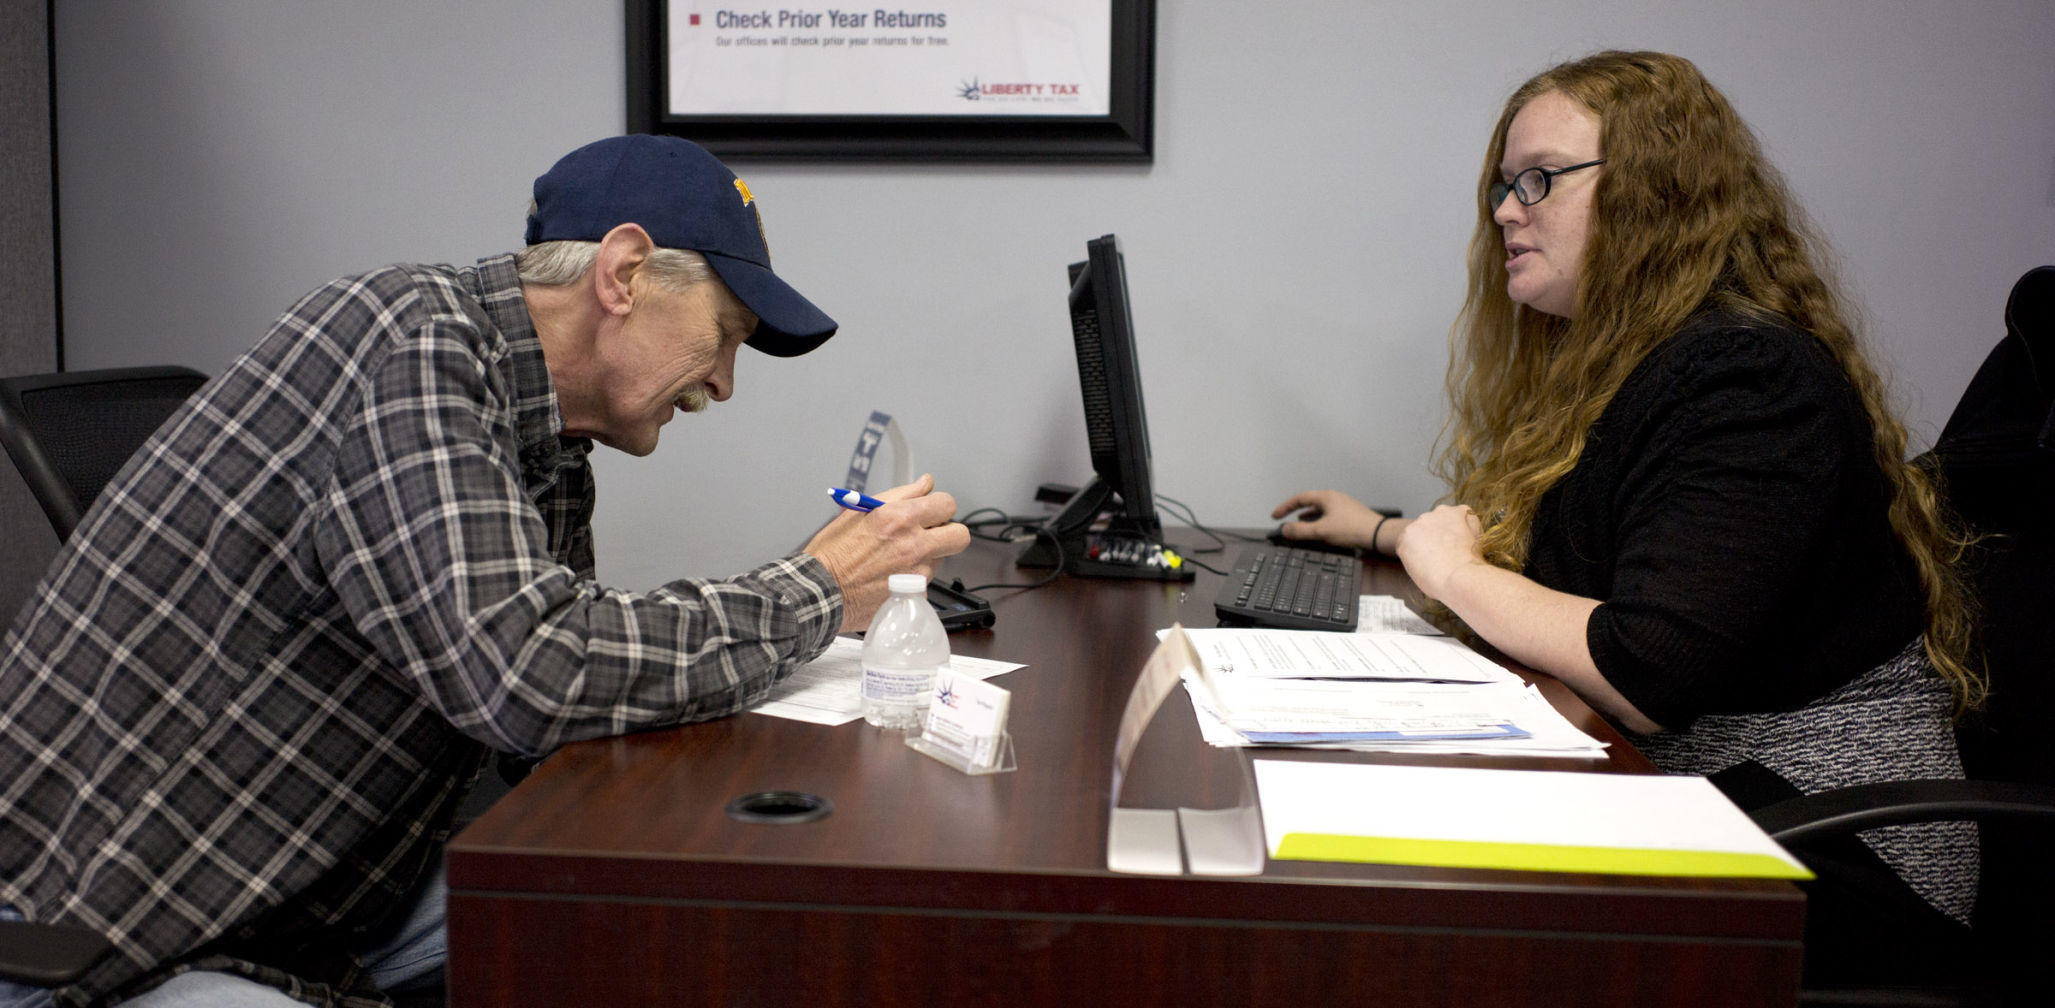 Even With An Extra Day, Last Minute Filers Converge On Tax Preparation  Offices